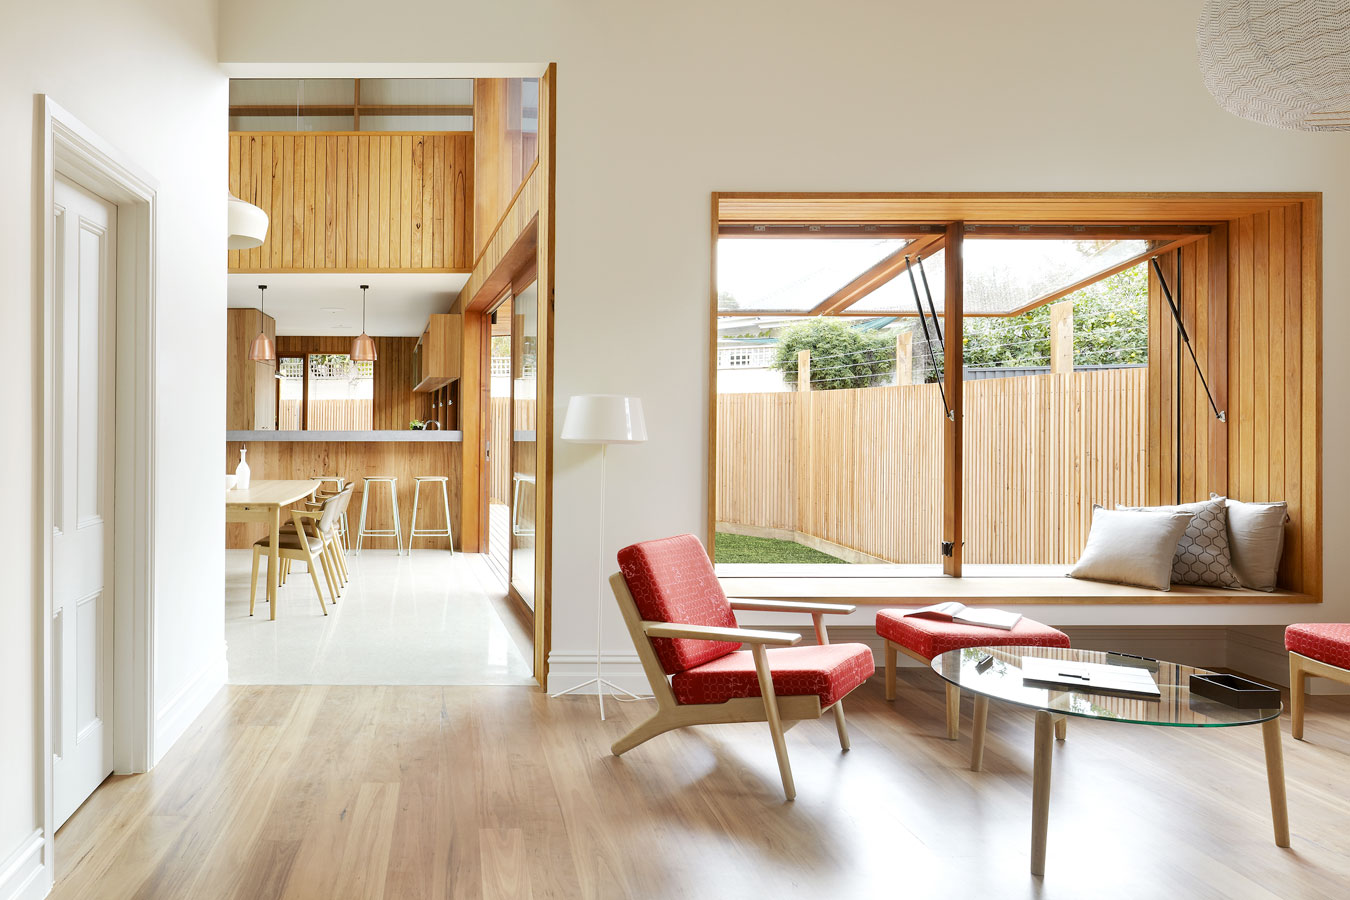 Overend Constructions, Fenwick, JFA, view from lounge, open hinge windows, timber floor, modern